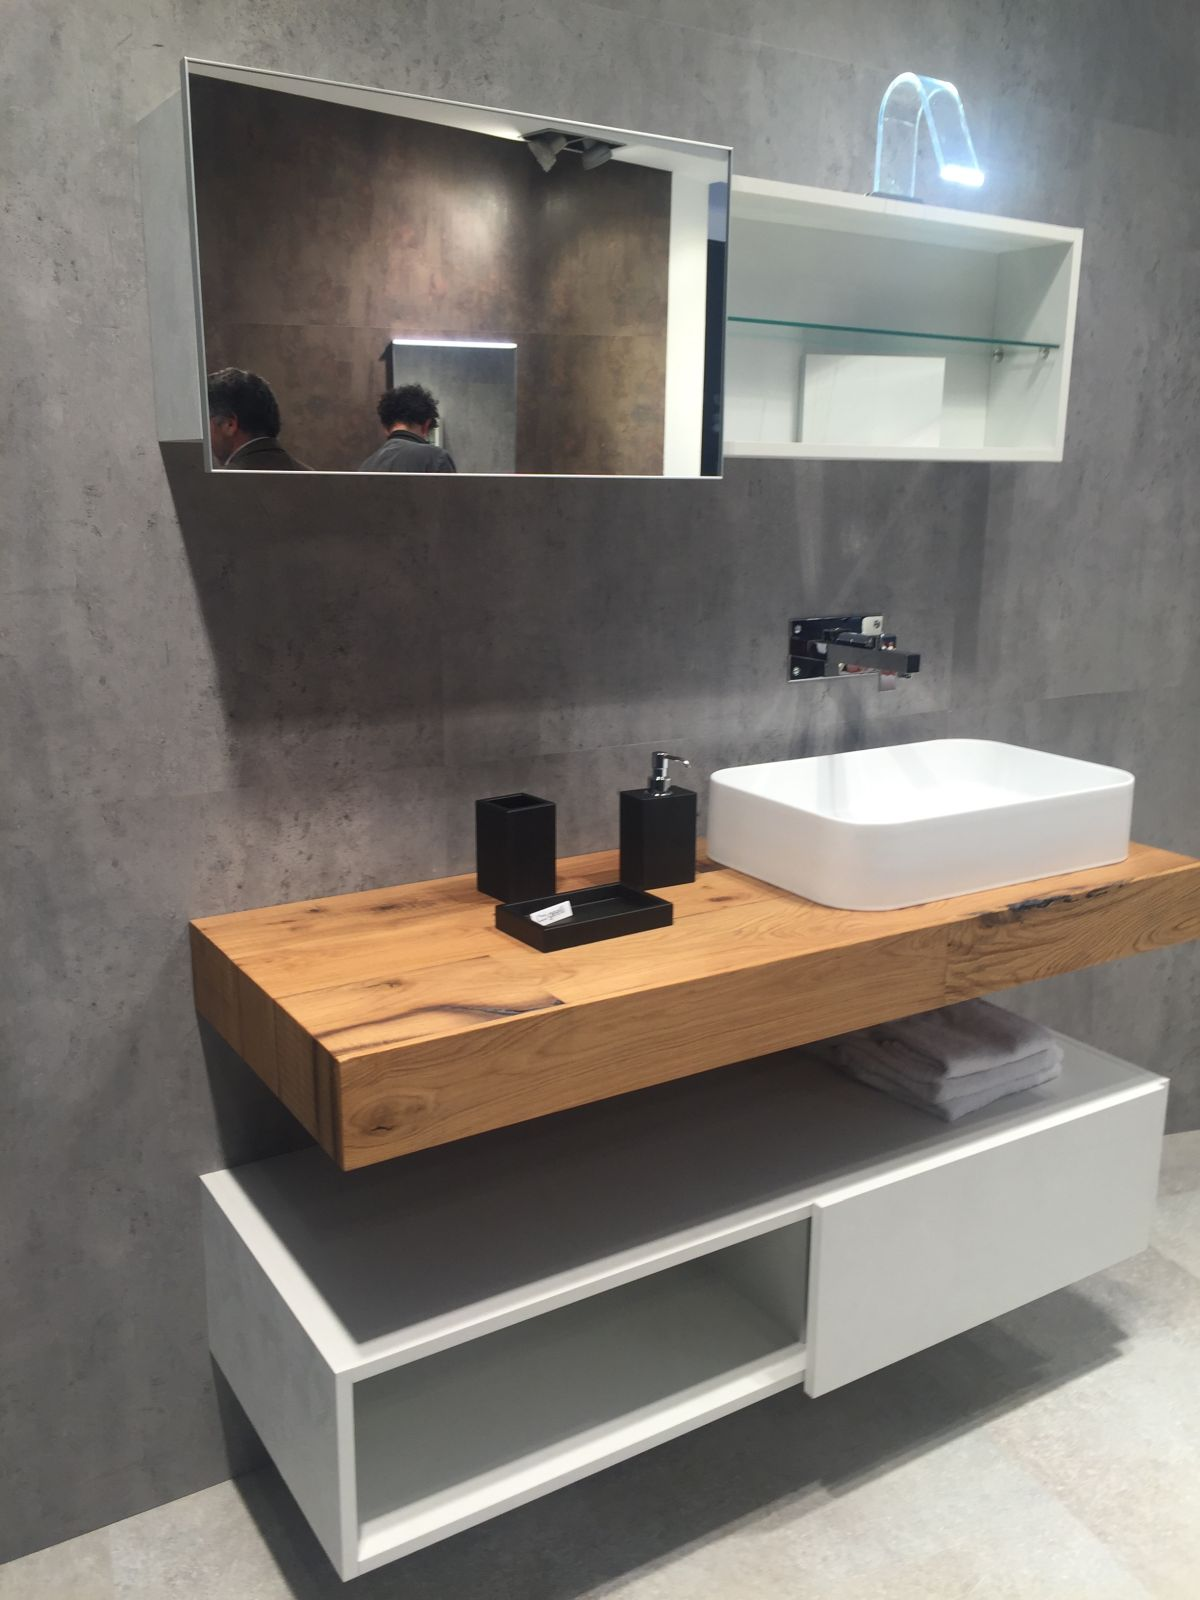 wooden bathroom sink cabinets. Solid Wood Floating Countertop For Bathroom Stylish Ways To Decorate With Modern Bathroom Vanities